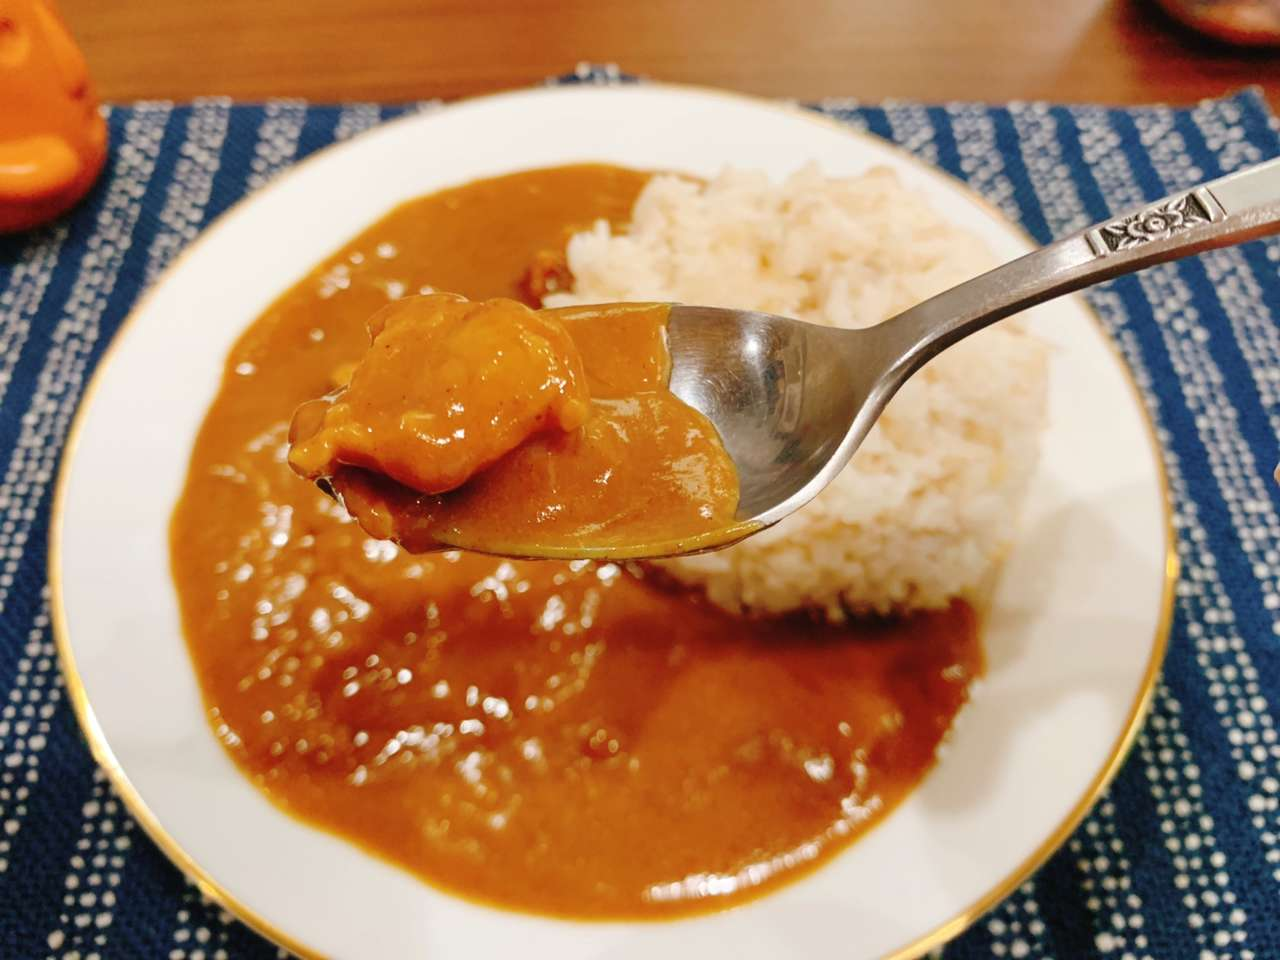 miaki-06-curry (10).jpg